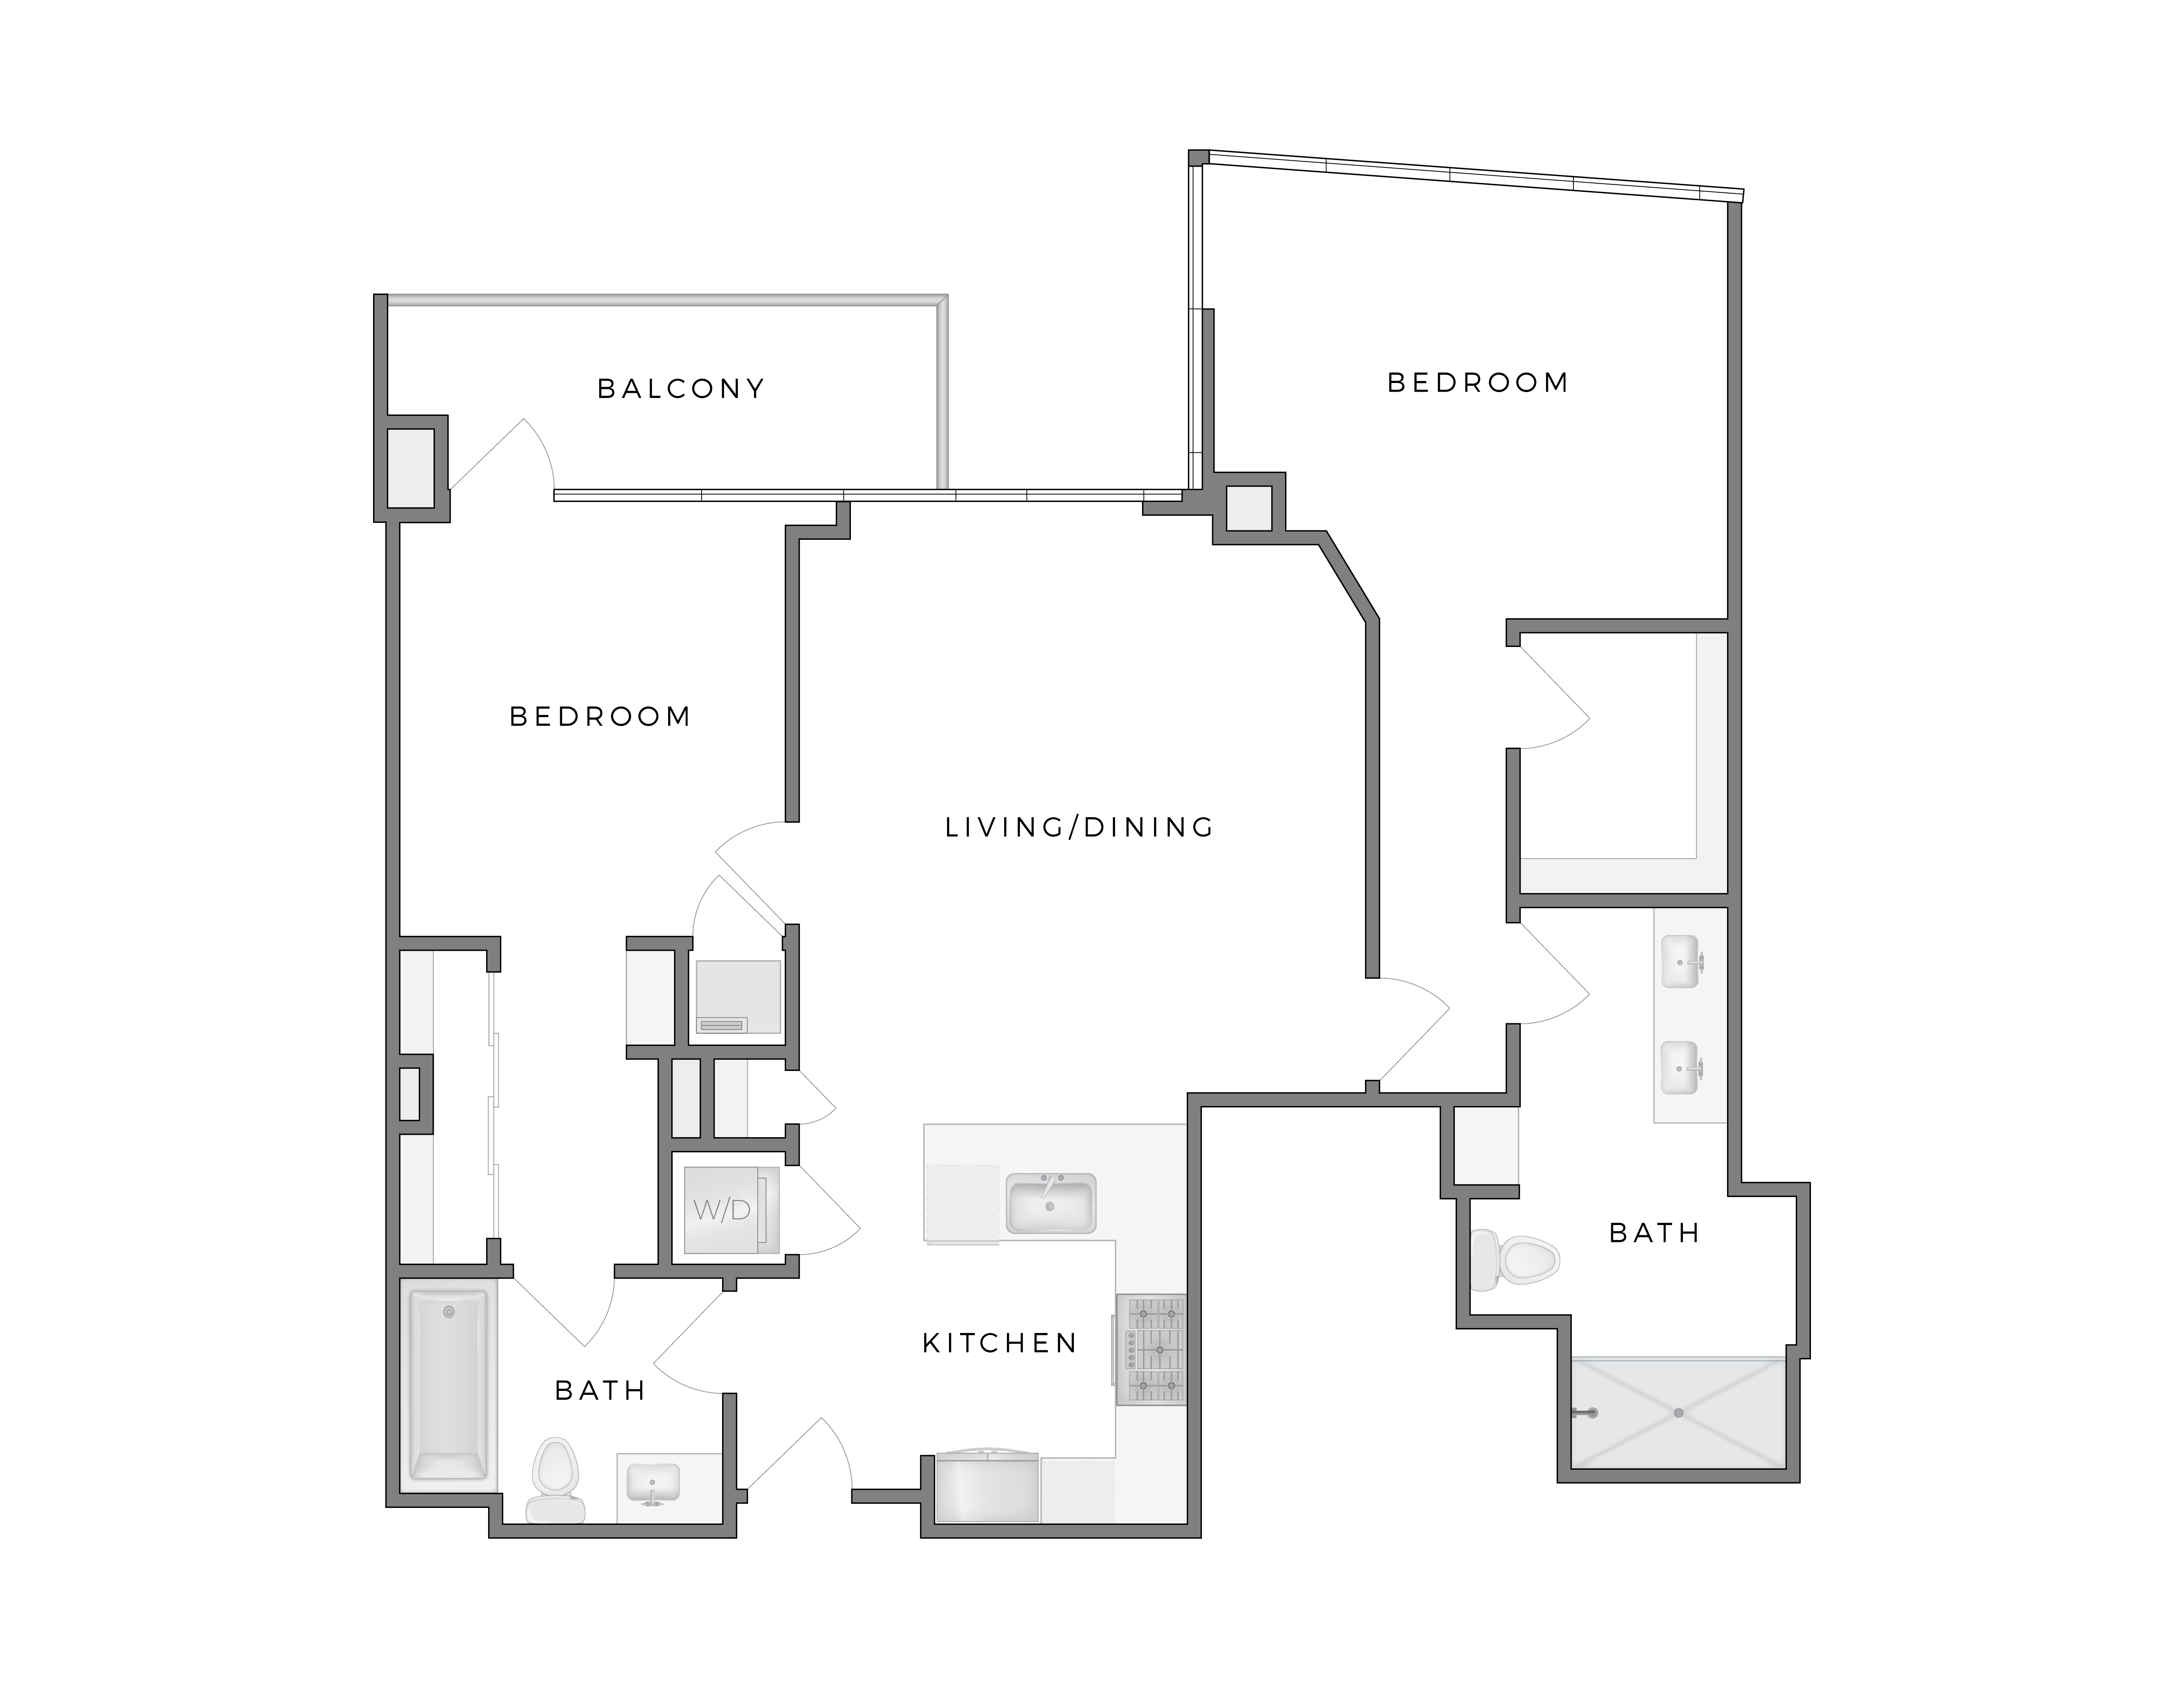 Atelier Warhol 8 apartment floorplan diagram with two bedrooms, two and a half baths, kitchen, living dining area, and patio